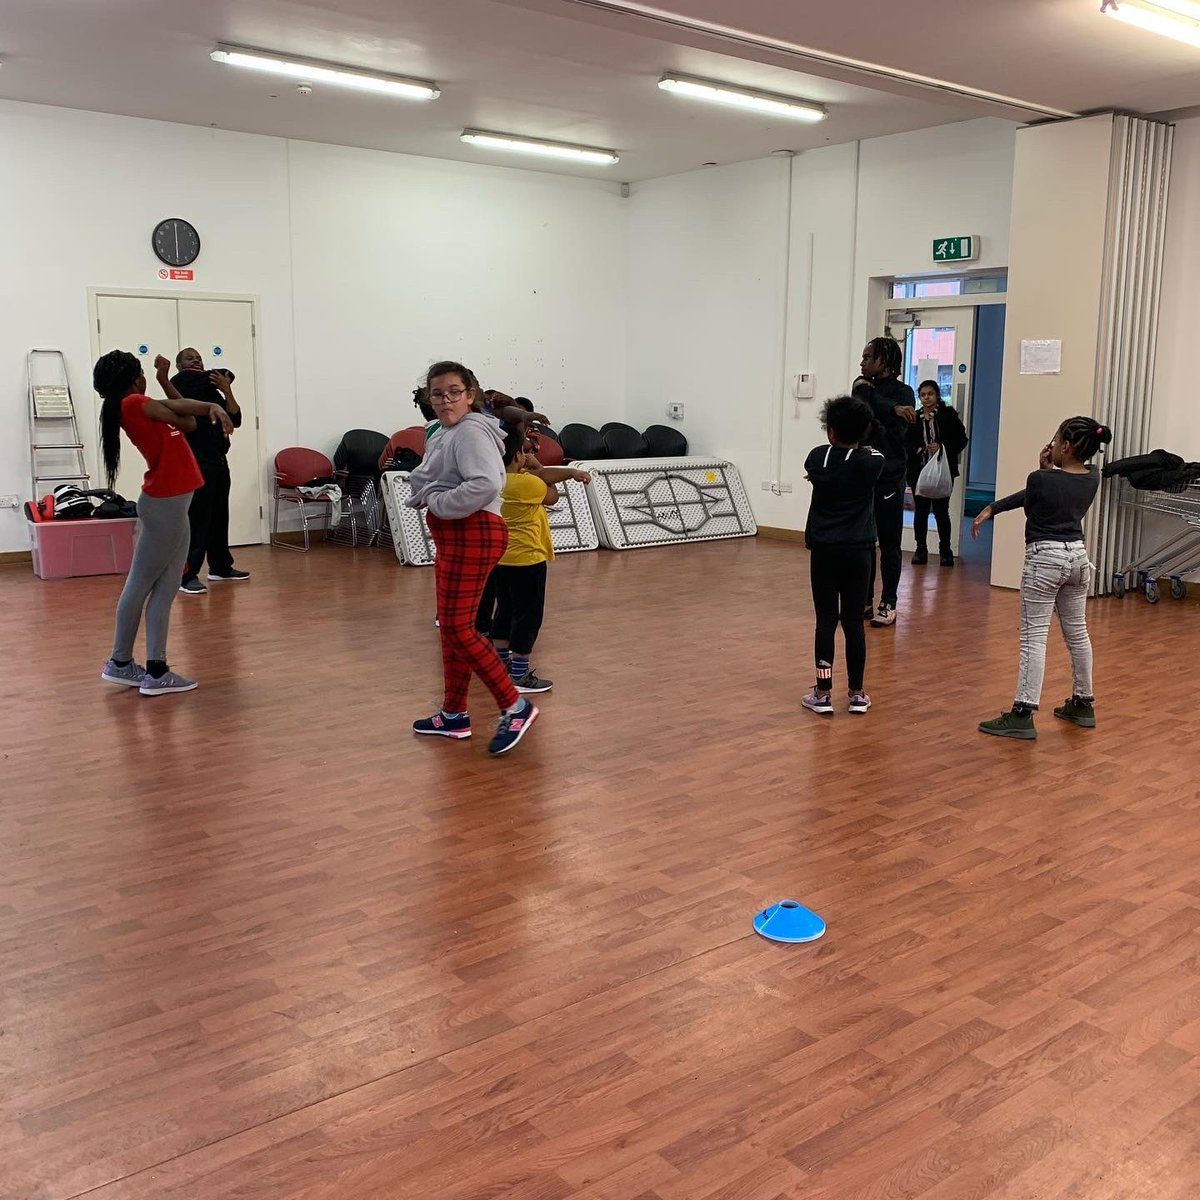 Starting free exercise sessions at Morningside Community Centre tonight & every Monday we'vegot youth Boxercise 5 to 6pm Wednesday we've got adult Zumba 7 to 8pm Friday chair based exercise with lunch Saturday adult boxercise 10 to 11am @HelloSanctuary @wickaward @dpymayorhackney